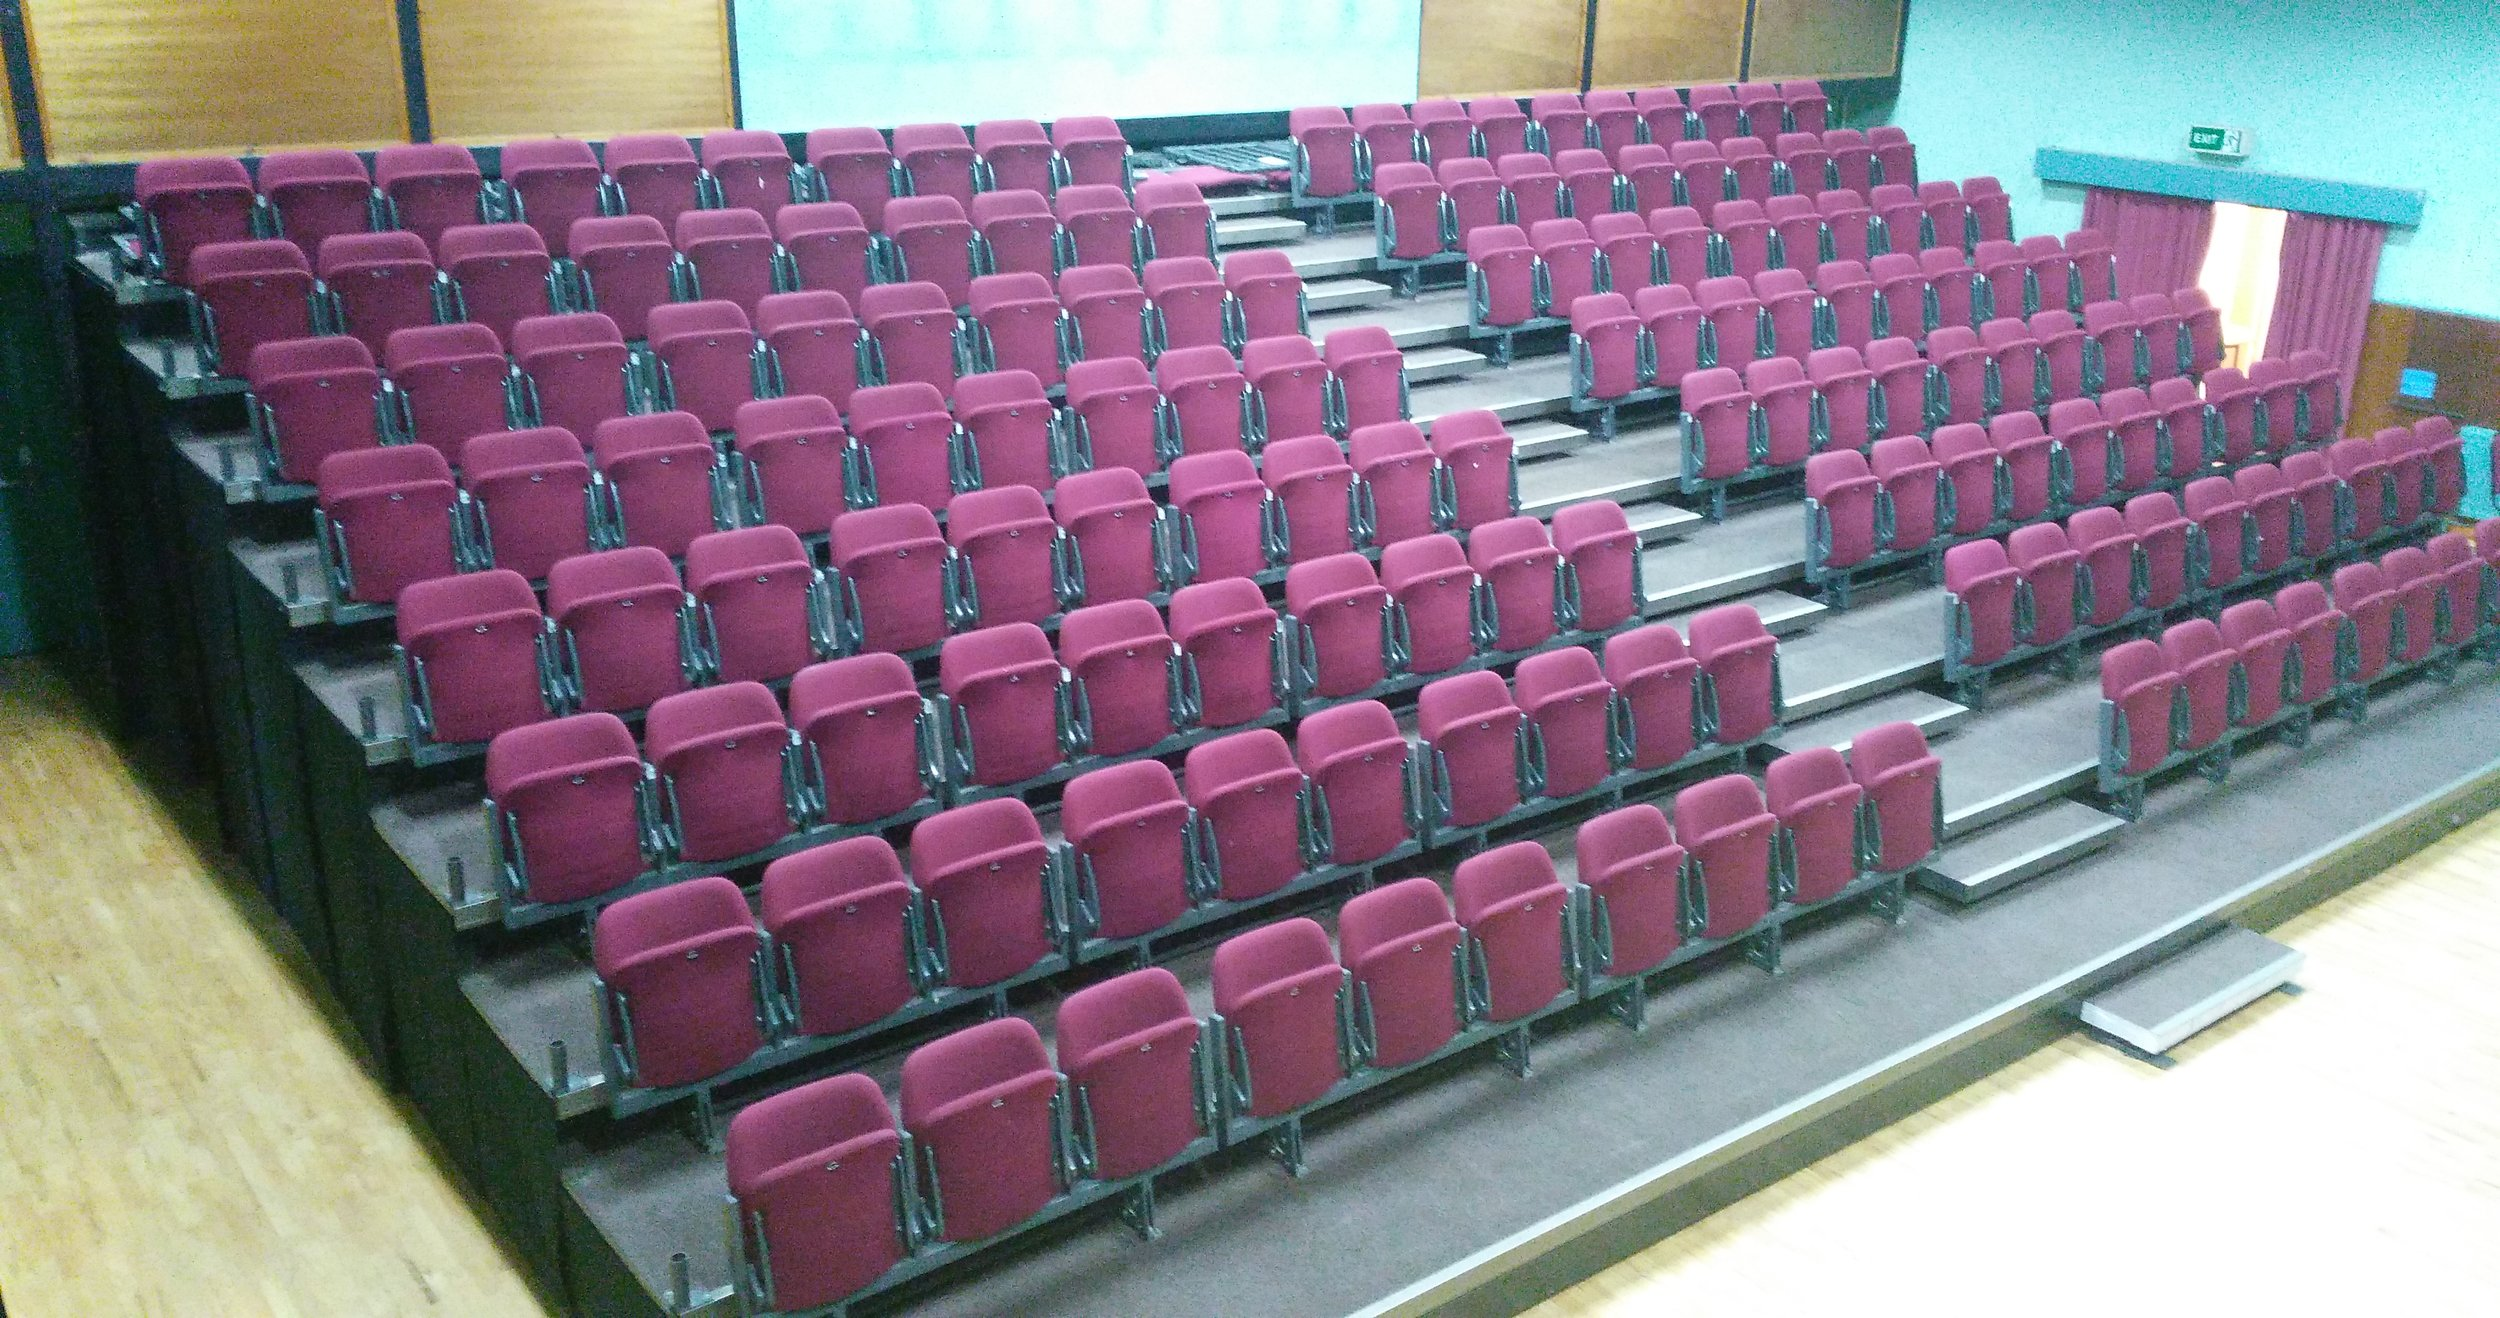 new_hall_seating_from_side.jpg